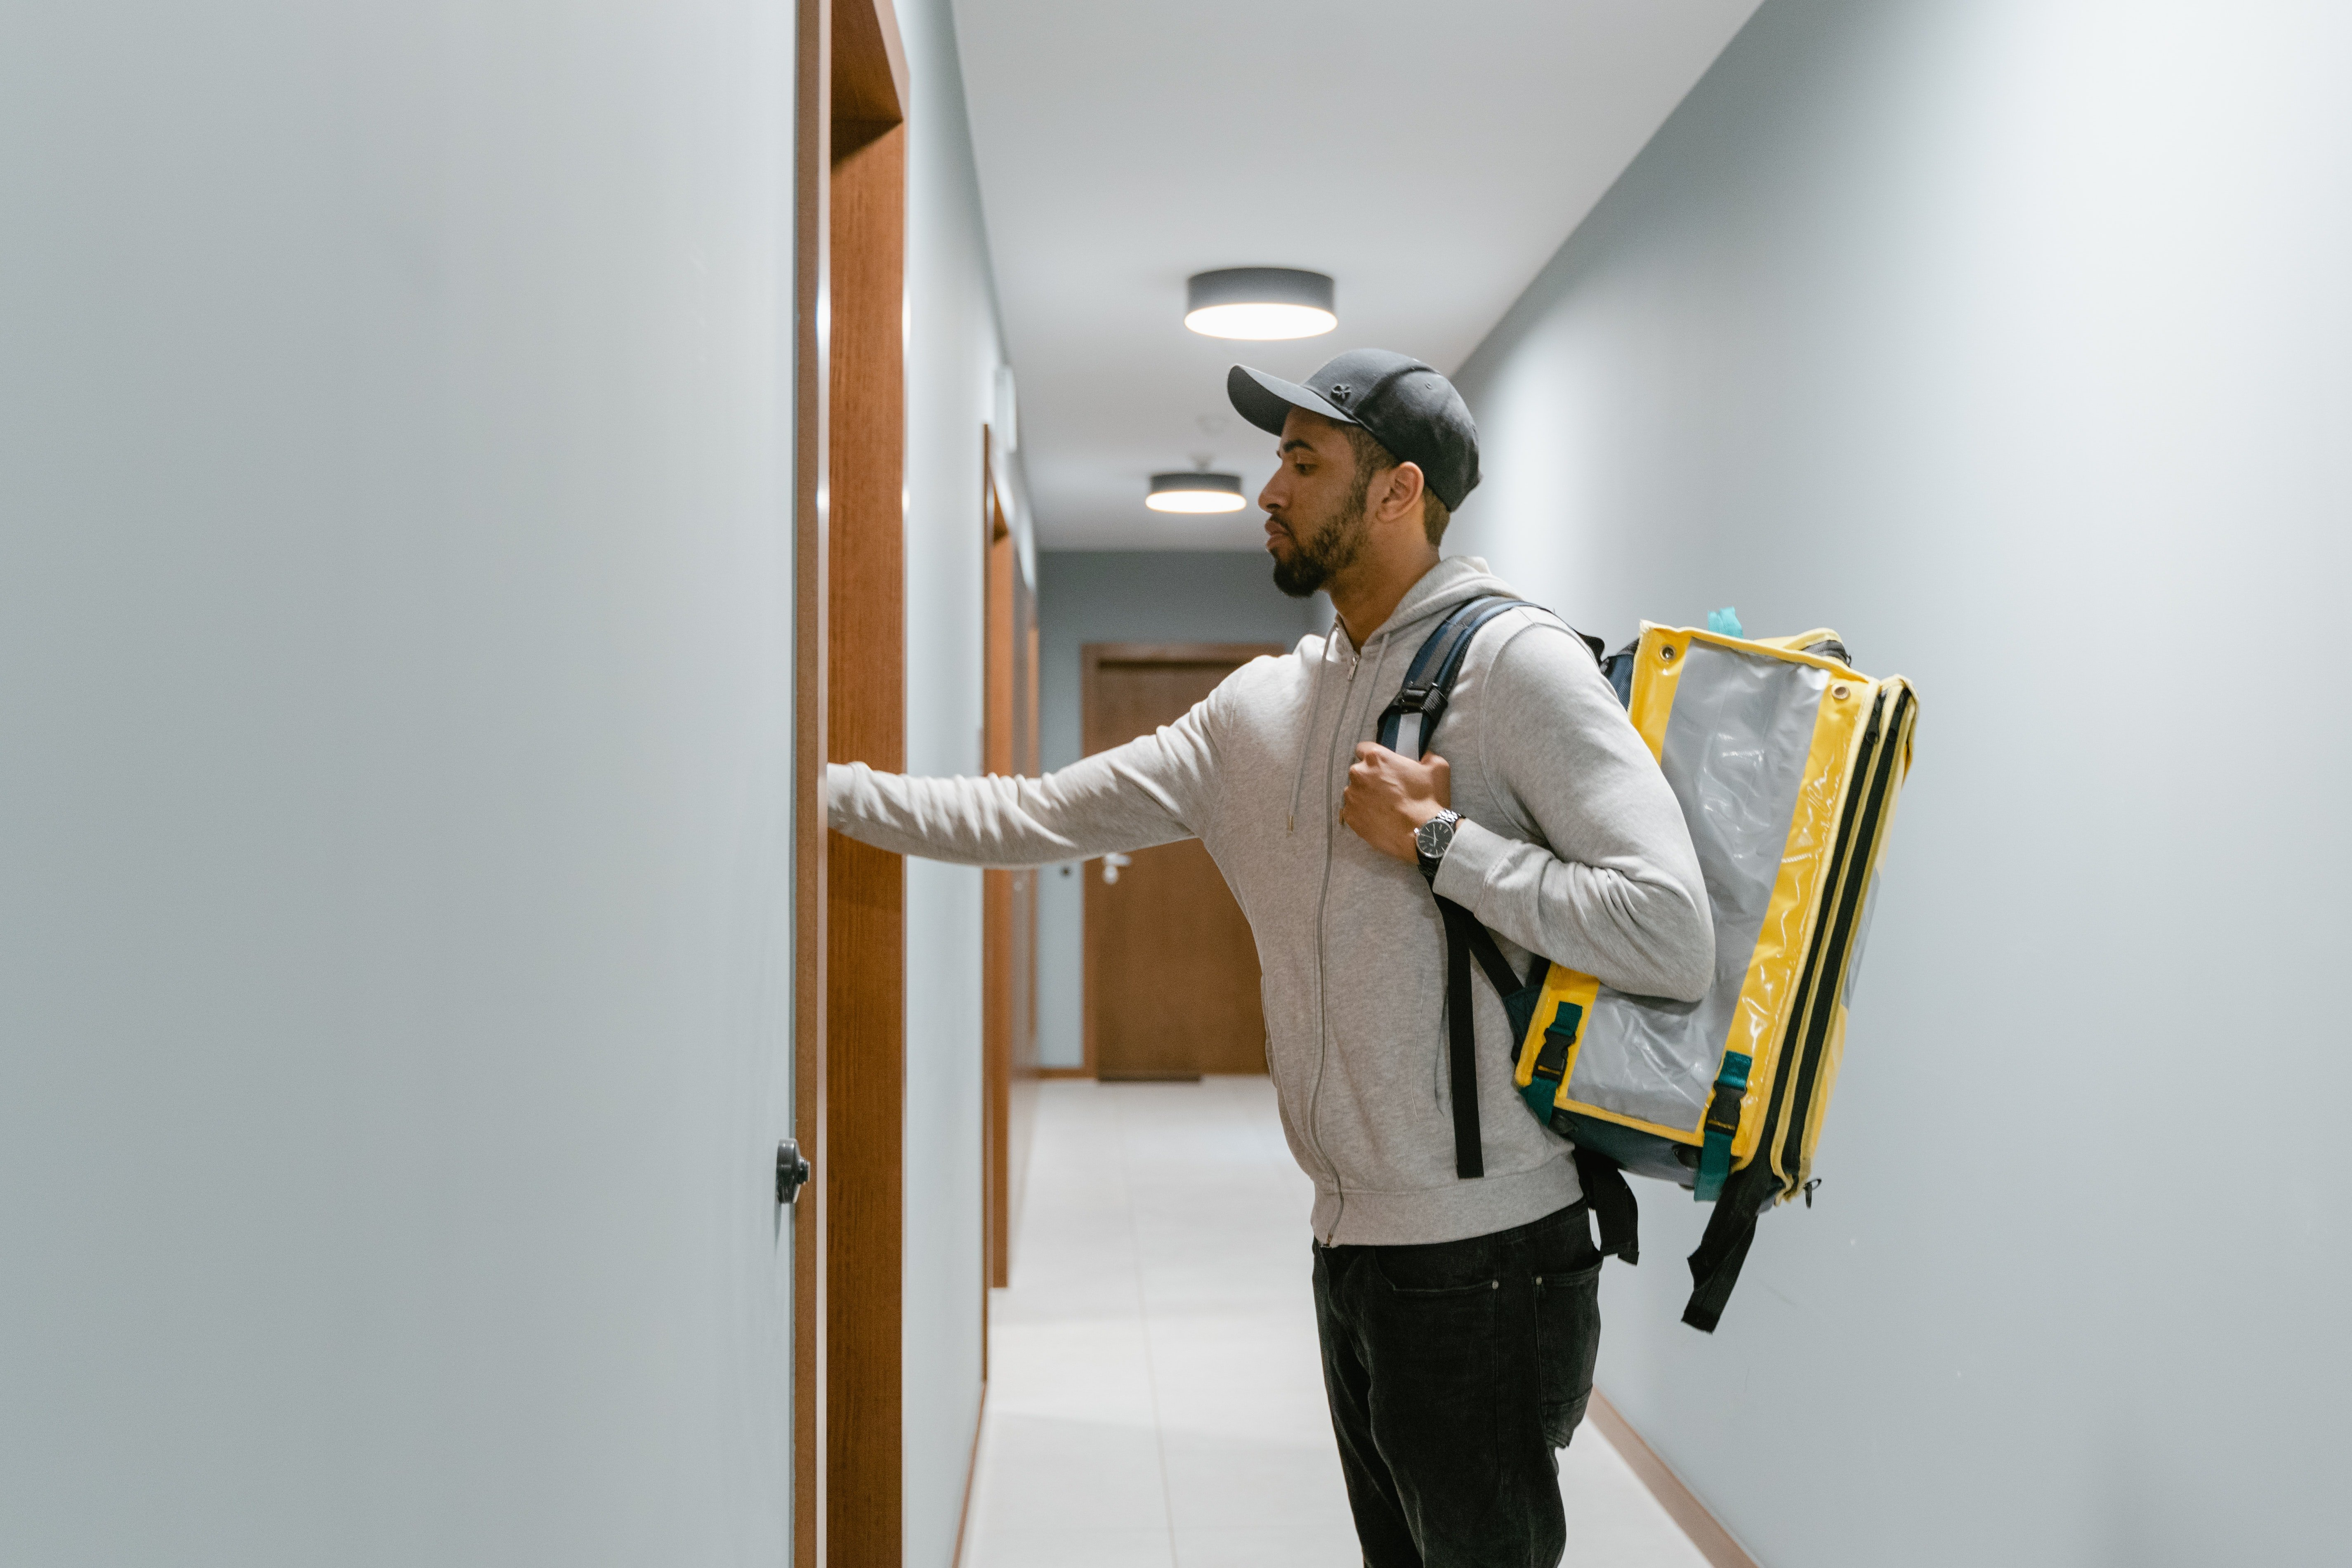 Delivery man knocking on a door | Photo: Pexels